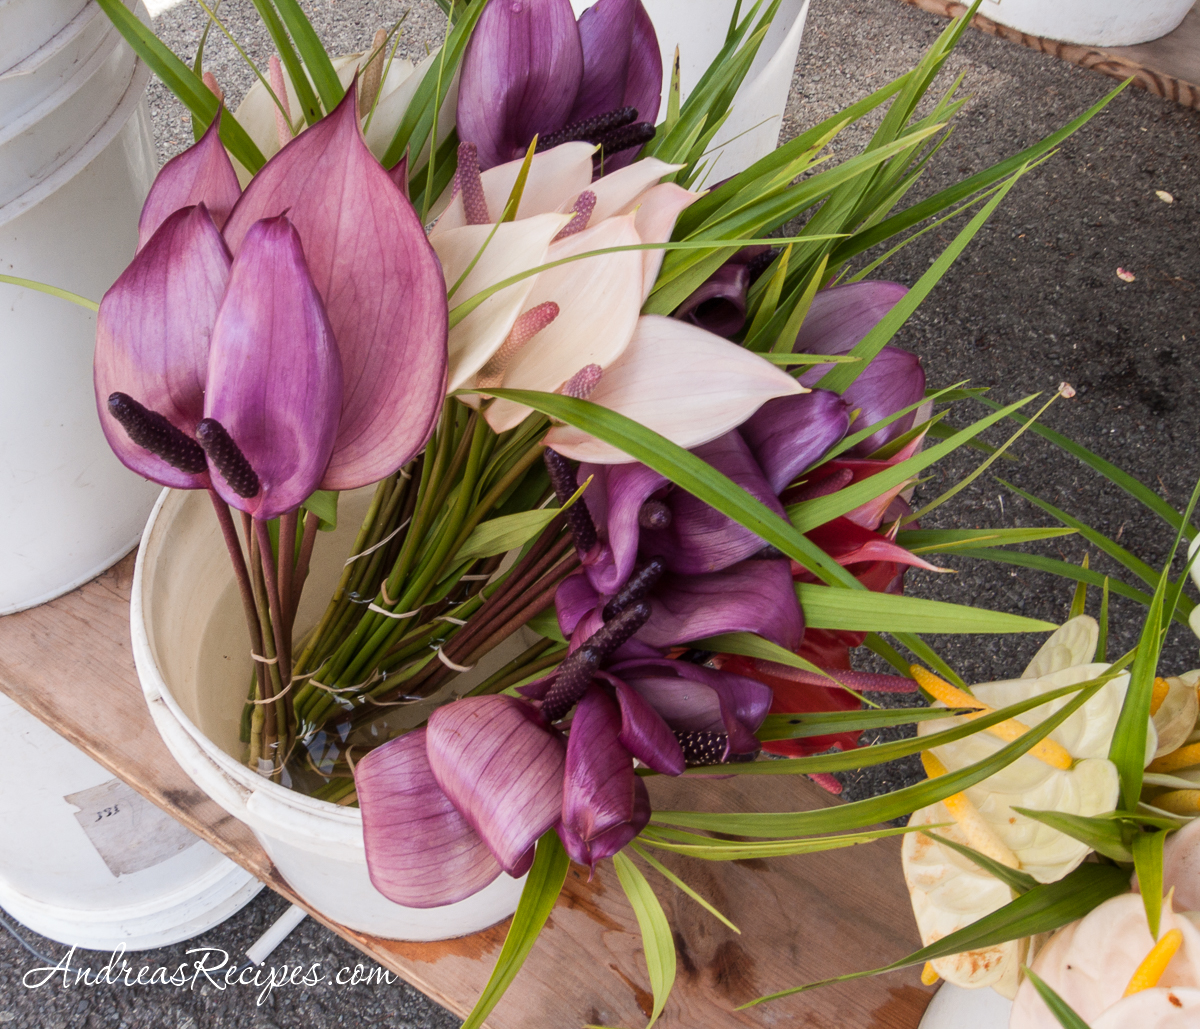 Purple anthuriums at the KCC Farmers' Market, Hawaii - Andrea Meyers